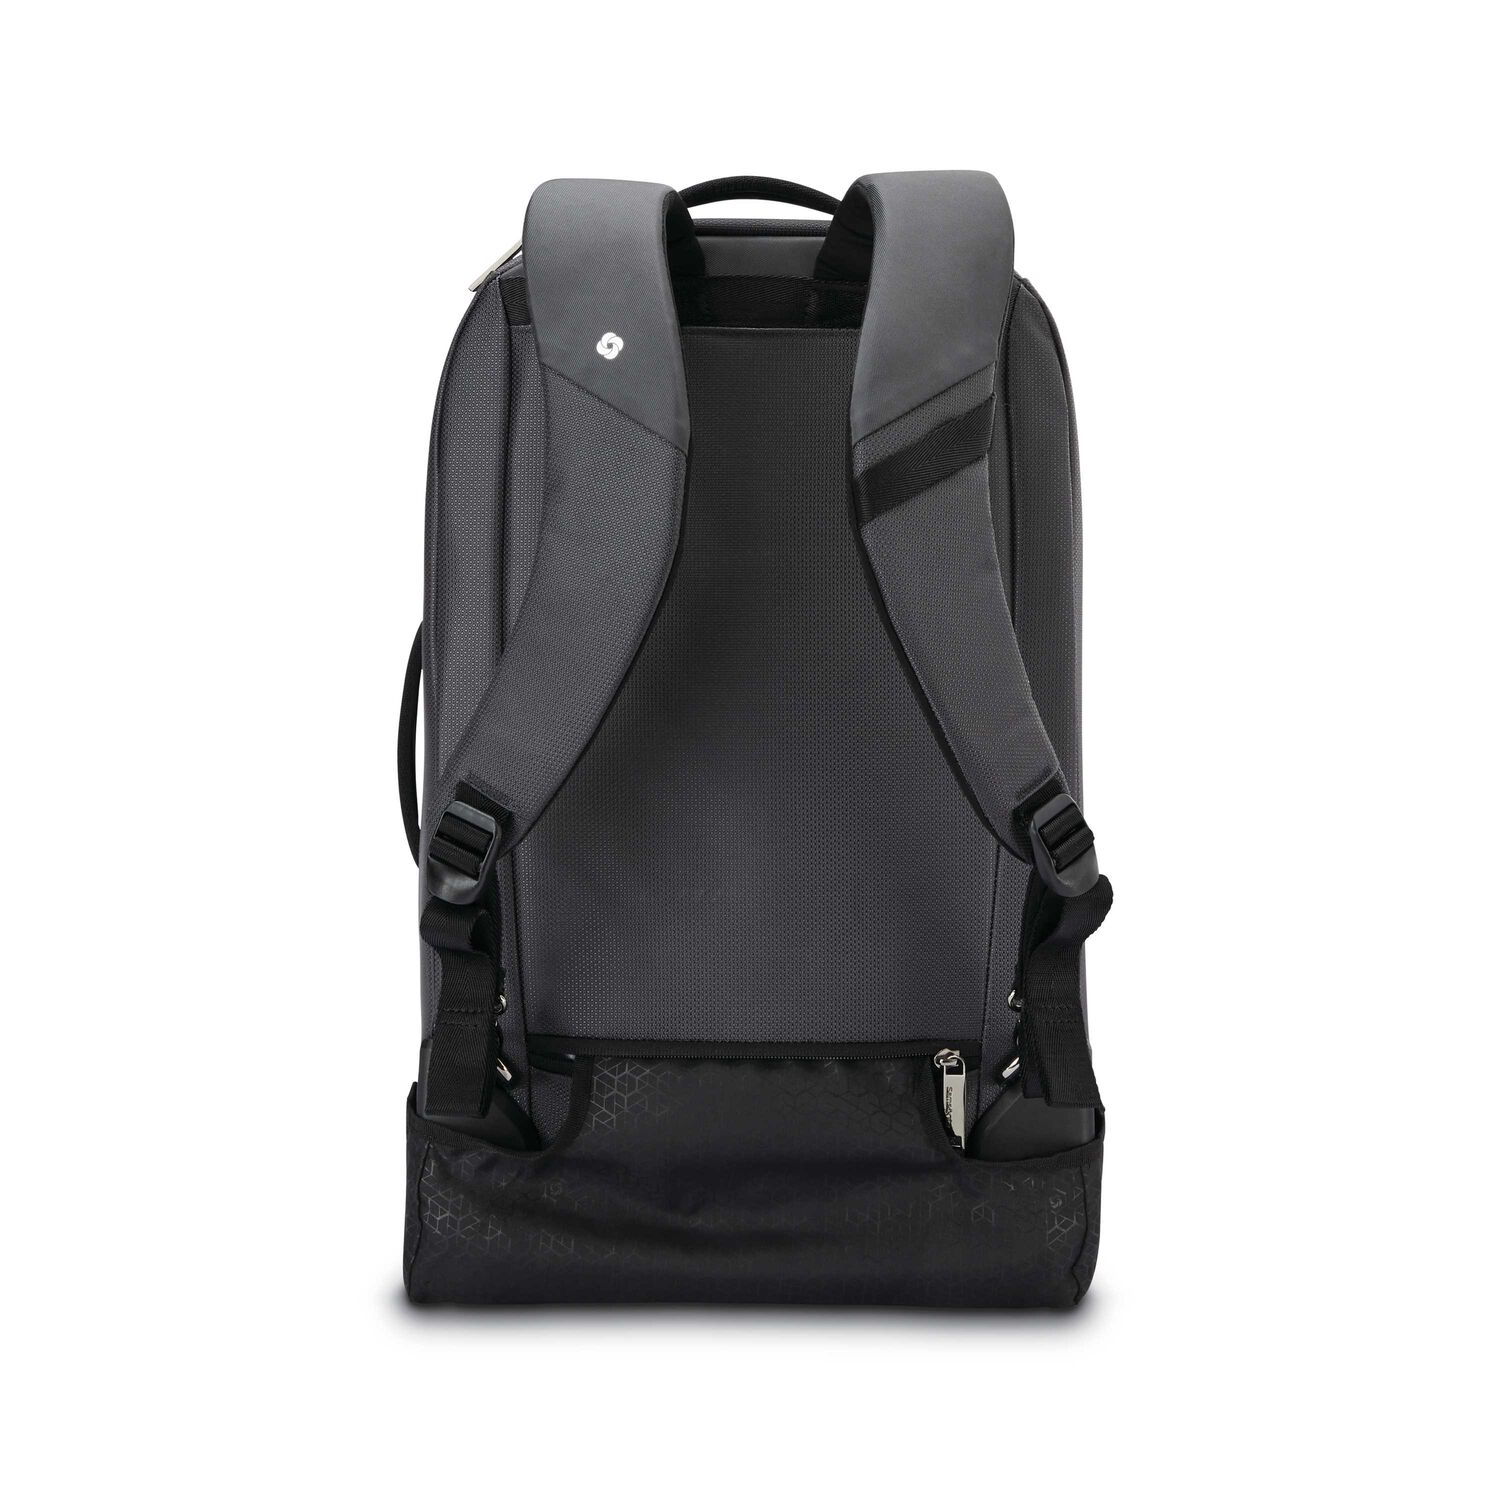 d3c5f9ebb Samsonite Encompass Convertible Wheeled Backpack in the color Anthracite  Grey.